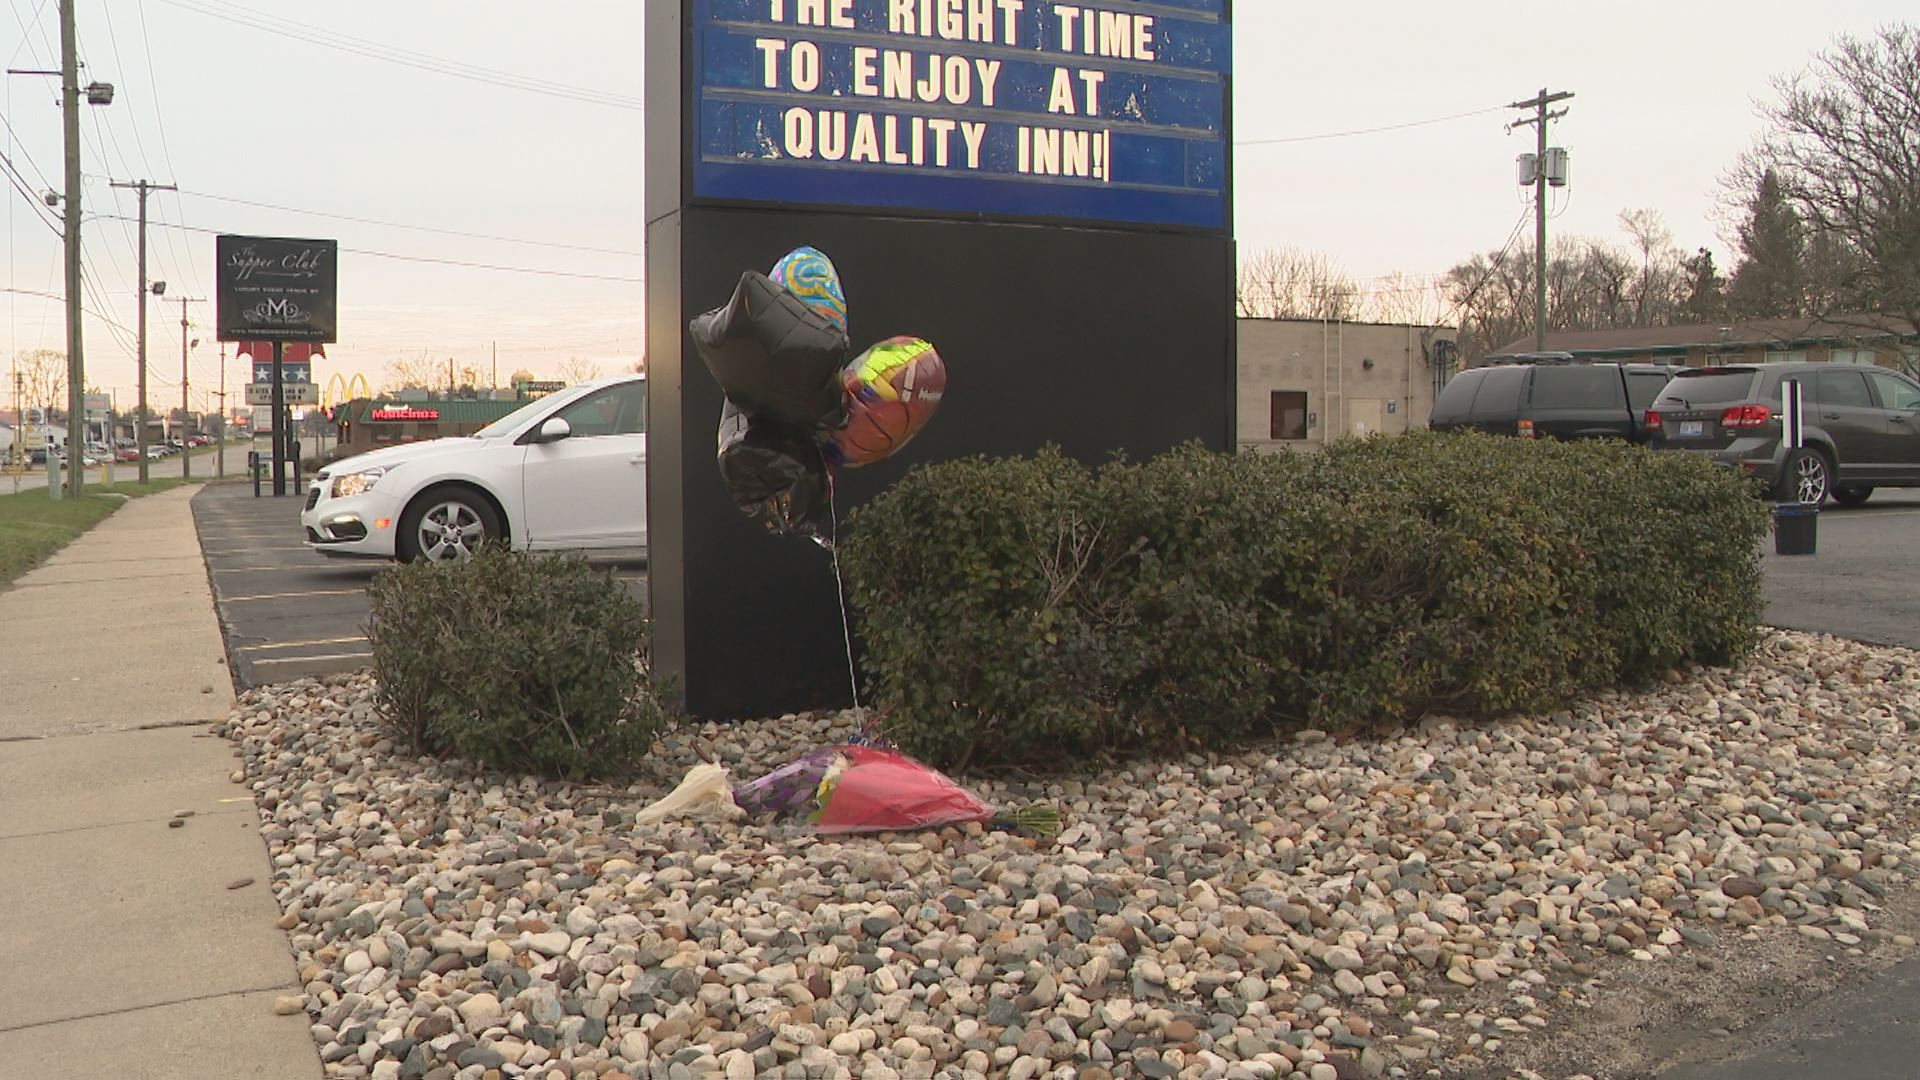 A memorial has been set up at a Niles hotel for a carbon monoxide poisoning victim. // WSBT 22 photo